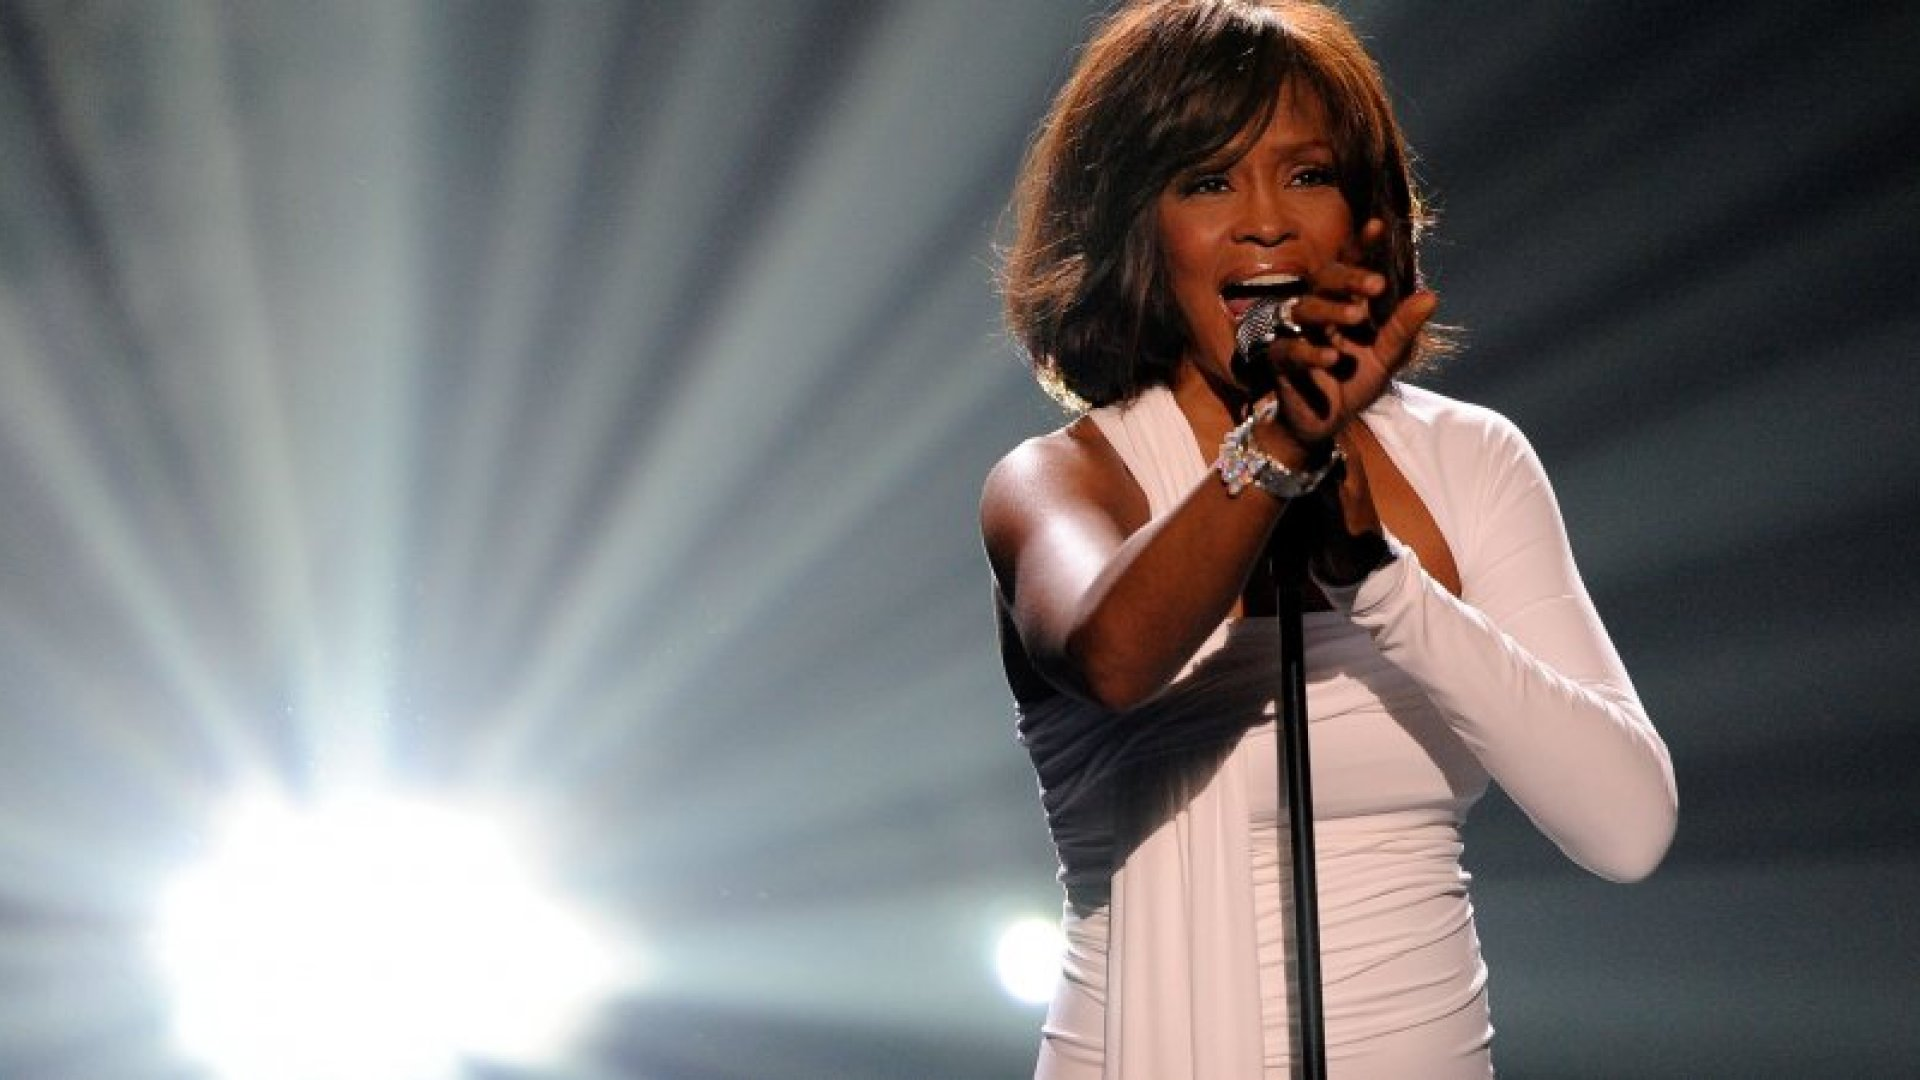 Singer Whitney Houston accepts the Winner of International - Favorite Artist Award onstage at the 2009 American Music Awards at Nokia Theatre L.A. Live on November 22, 2009 in Los Angeles, California.  (Photo by Kevork Djansezian/Getty Images)